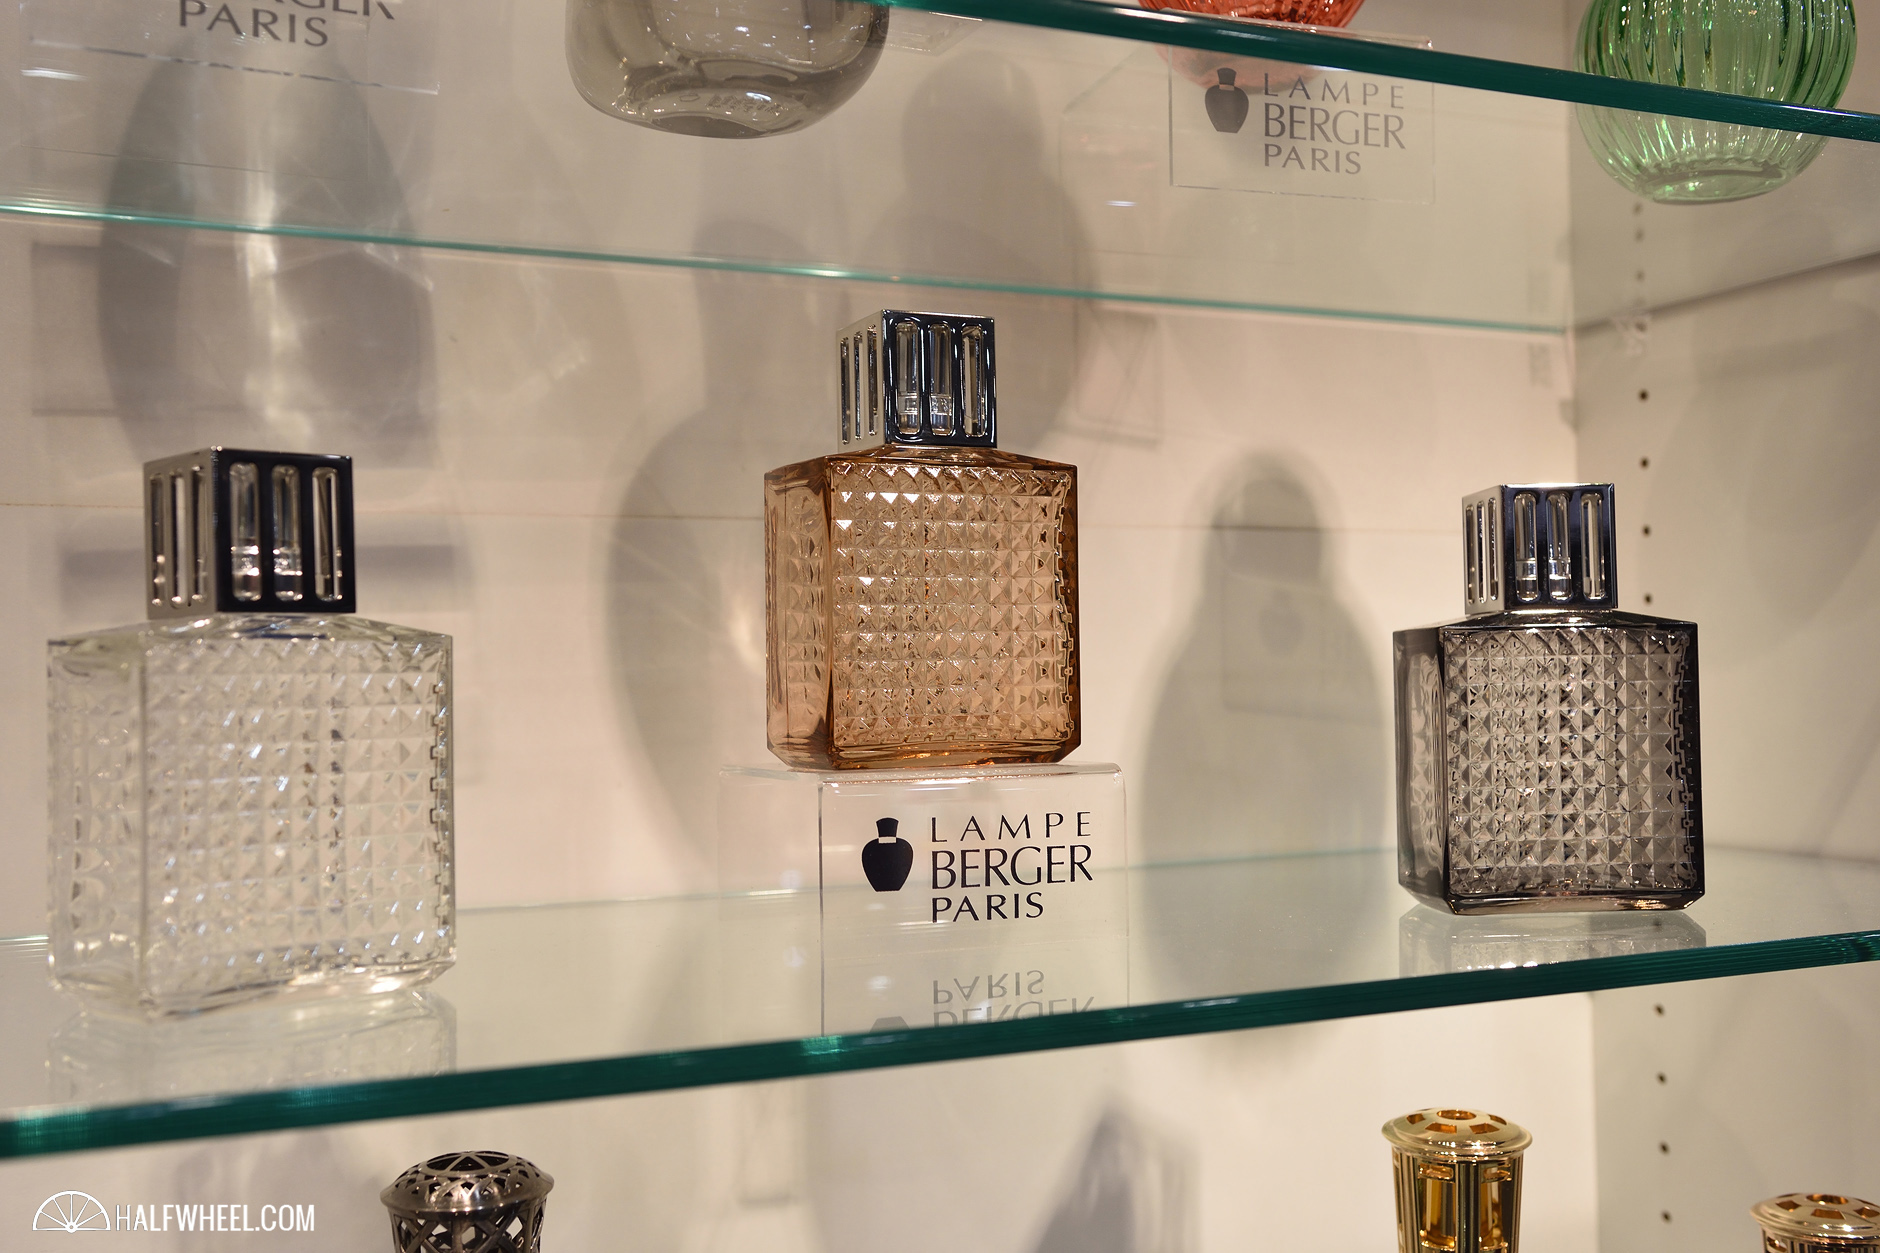 Lampe Berger Paris Diamant IPCPR 2016